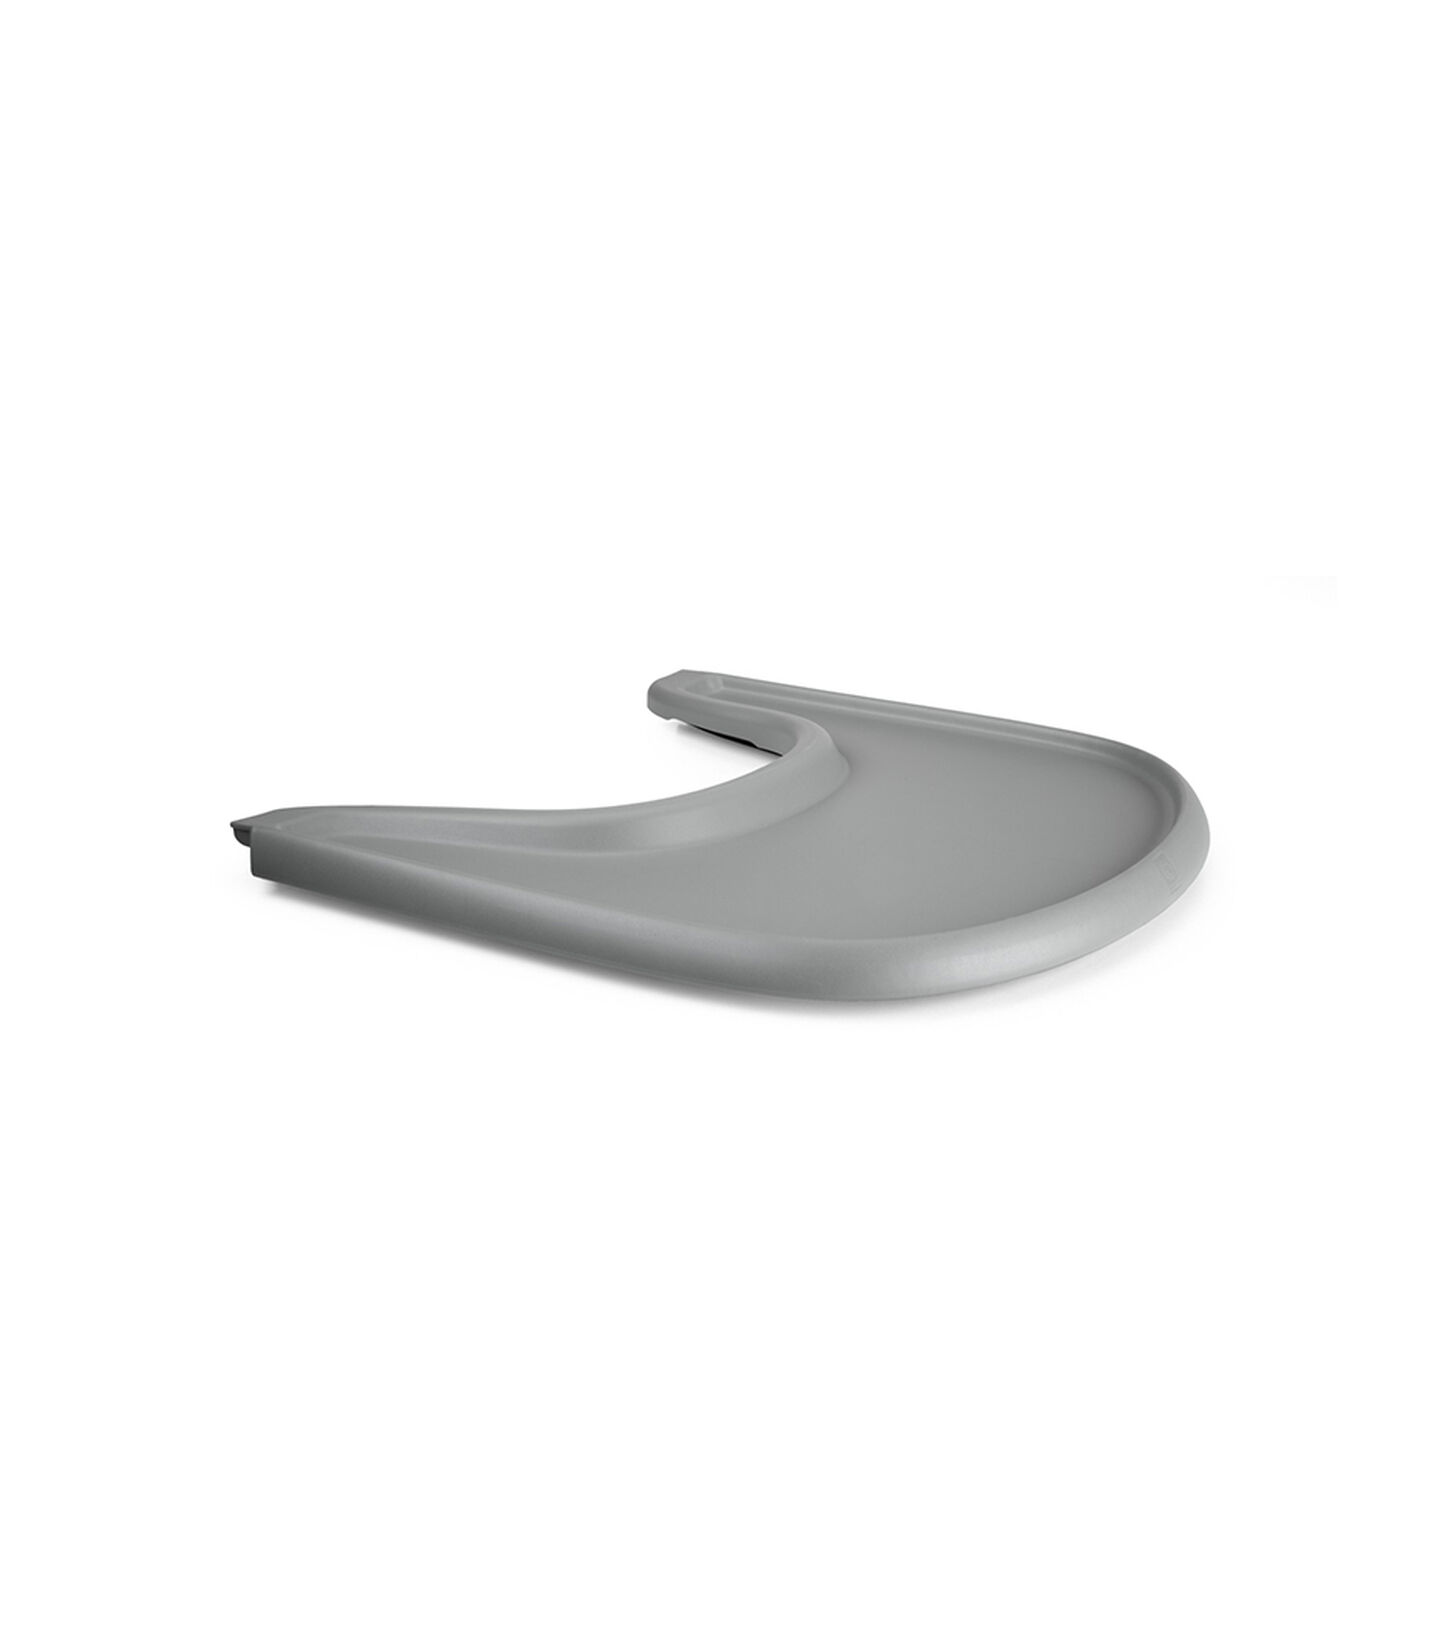 Stokke® Tray Storm Grey, Storm Grey, mainview